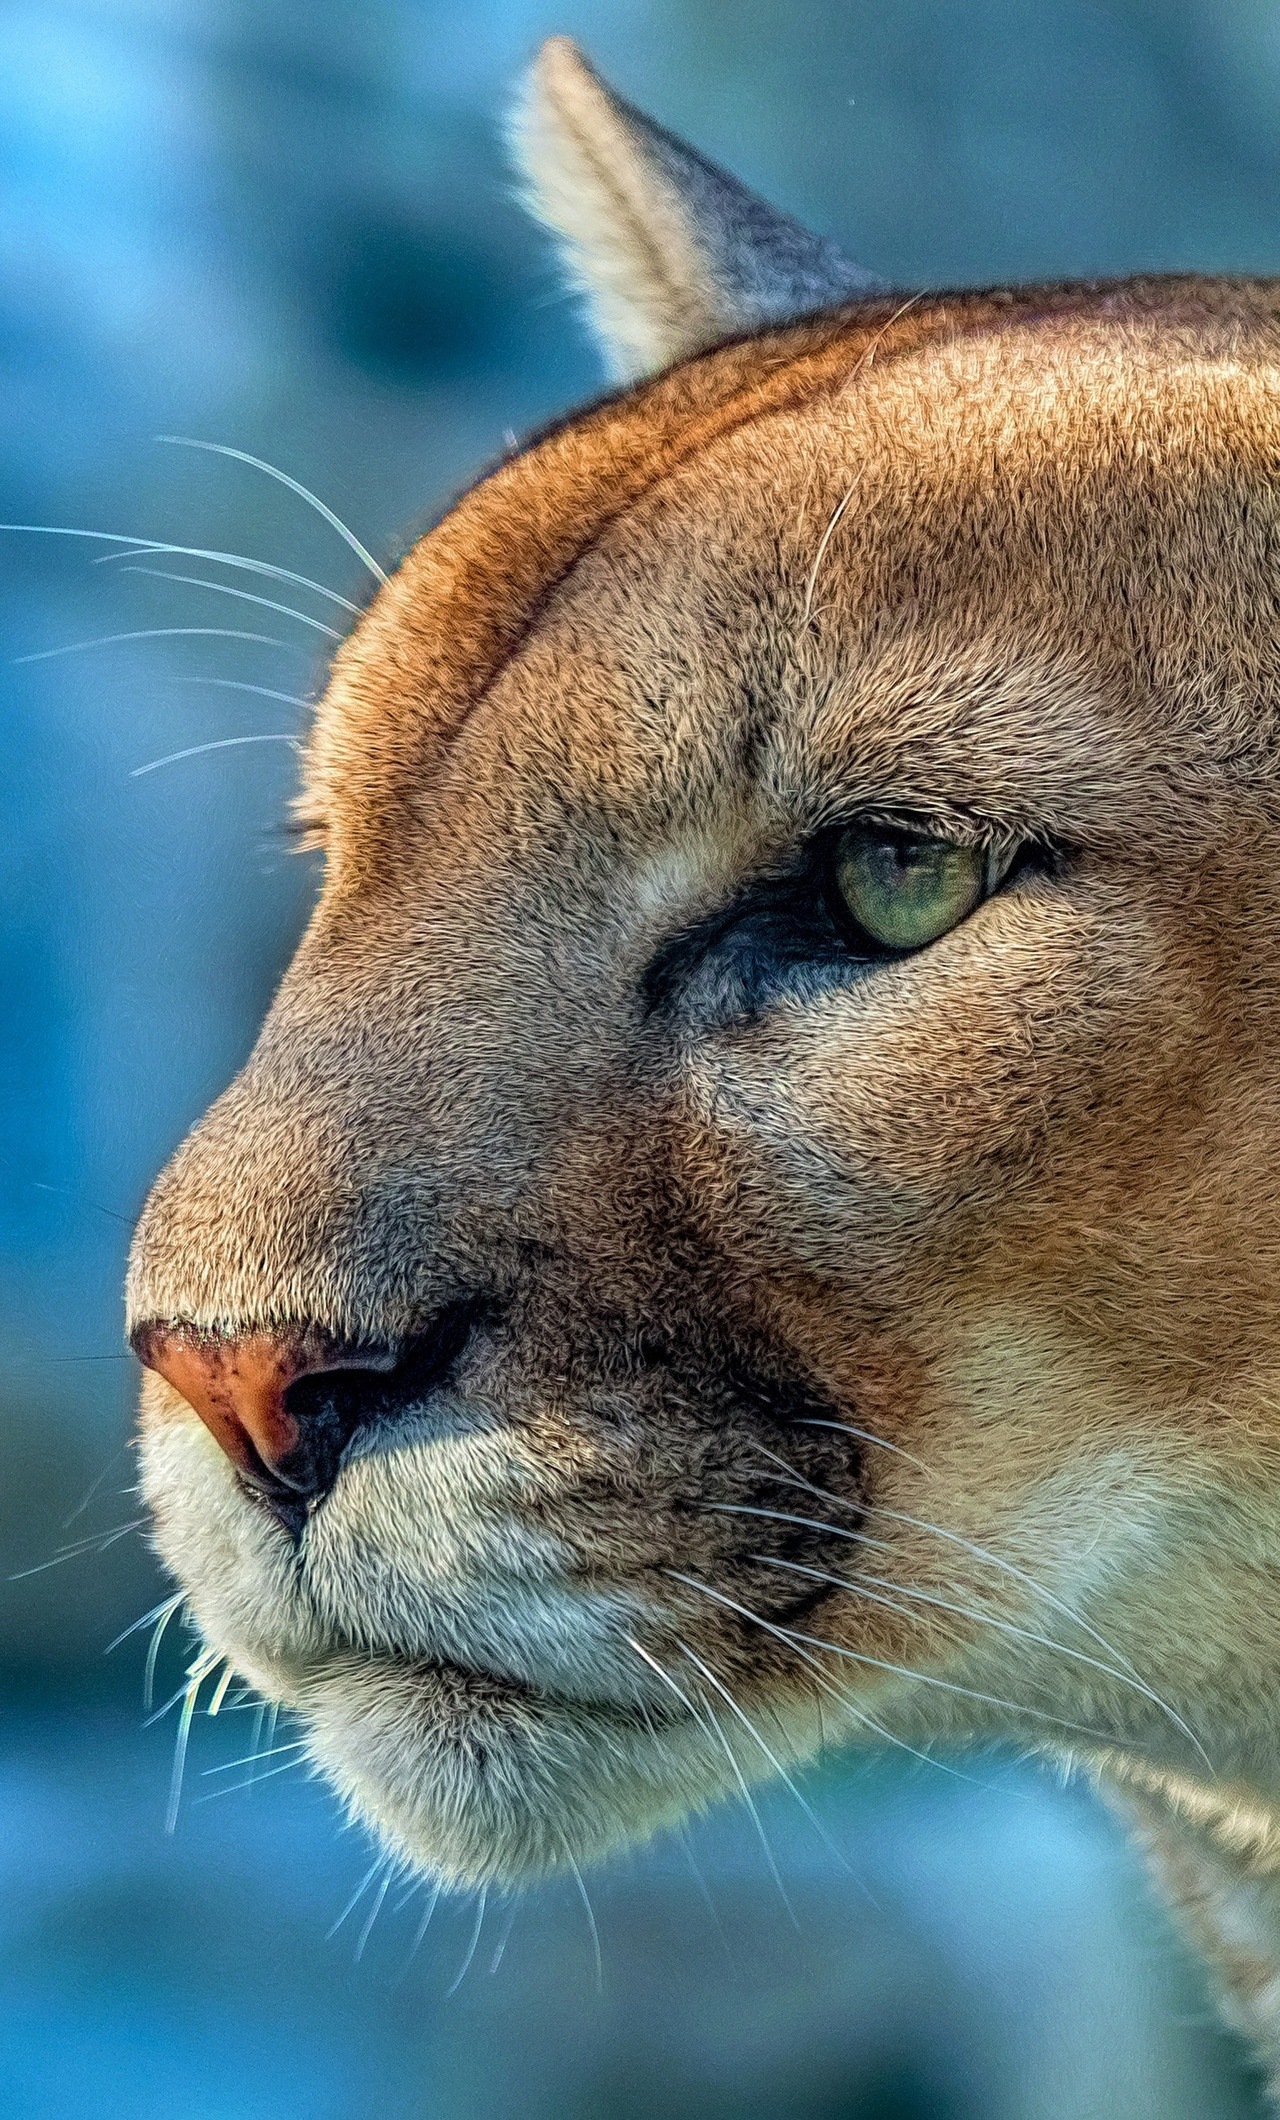 1280x2120 cougar 4k iphone 6+ hd 4k wallpapers, images, backgrounds